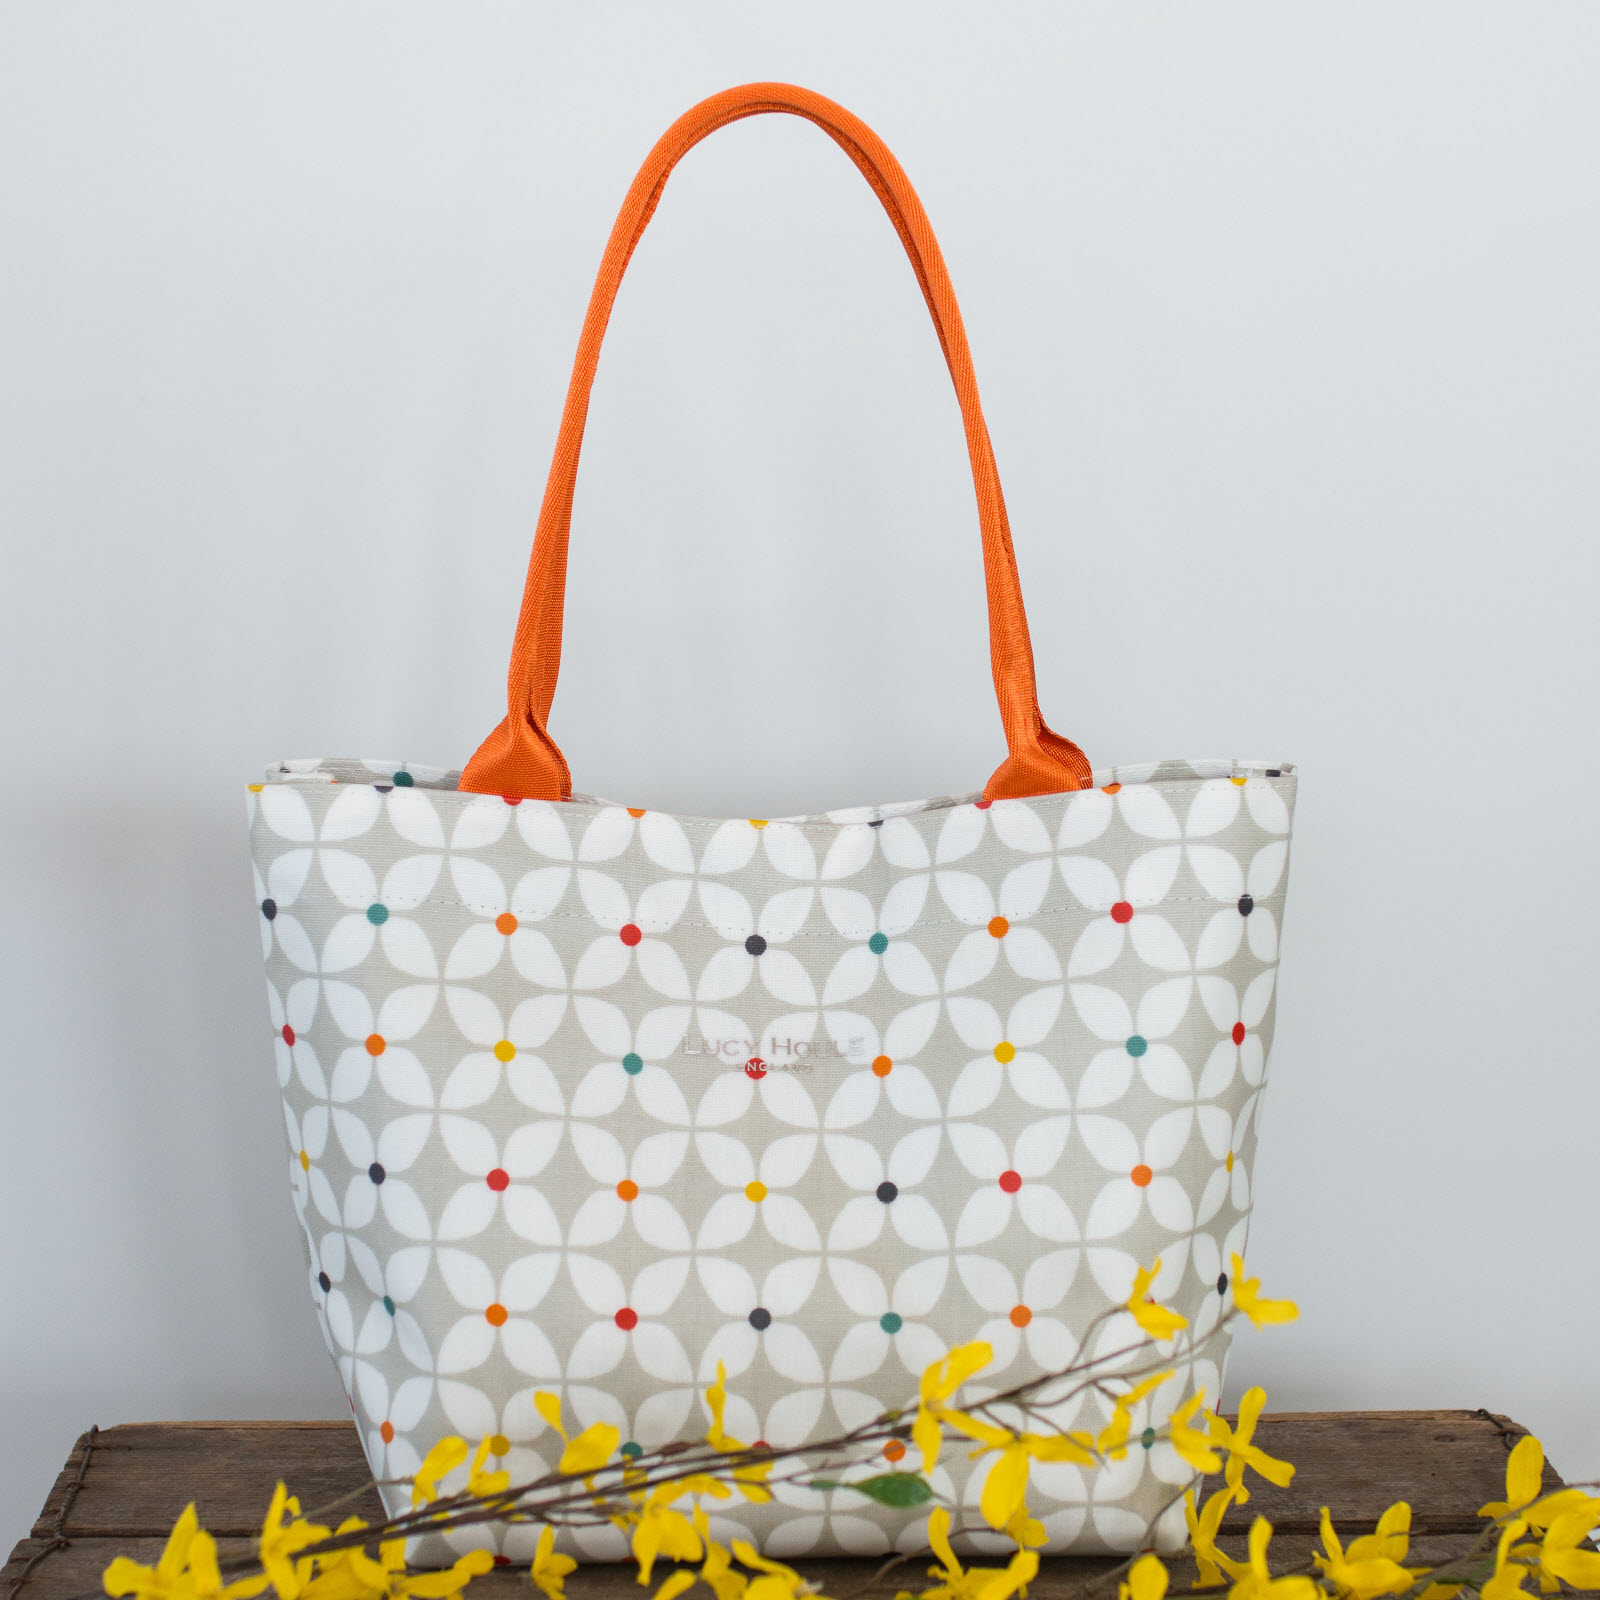 Modern Daisy Taupe Small Tote Bag with Orange Handles